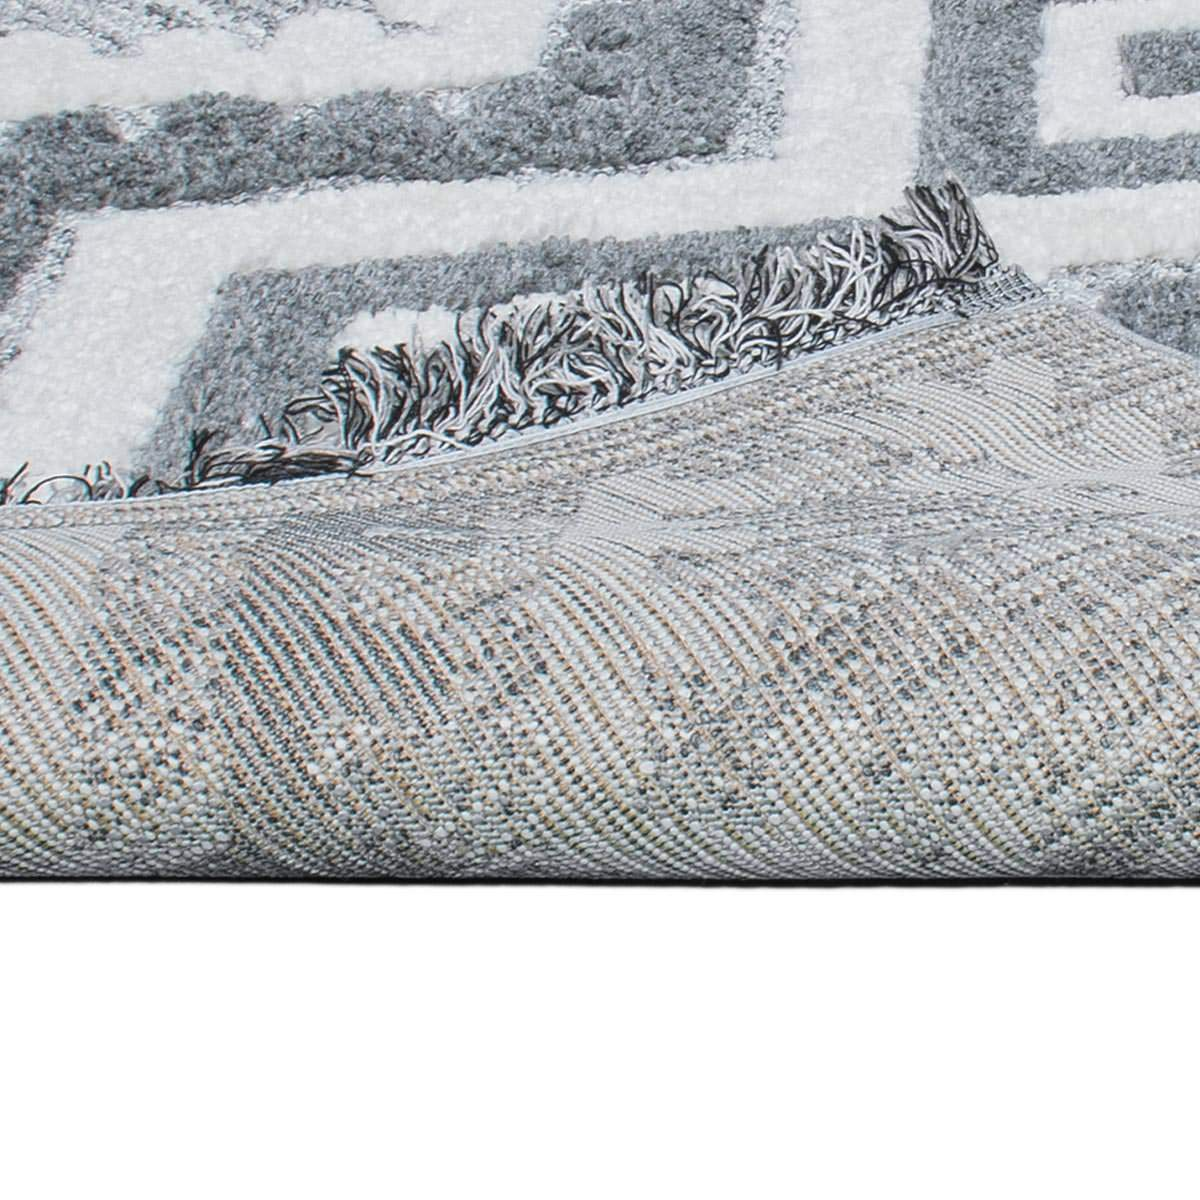 Atlas Rug 08 Grey - Fringes 4